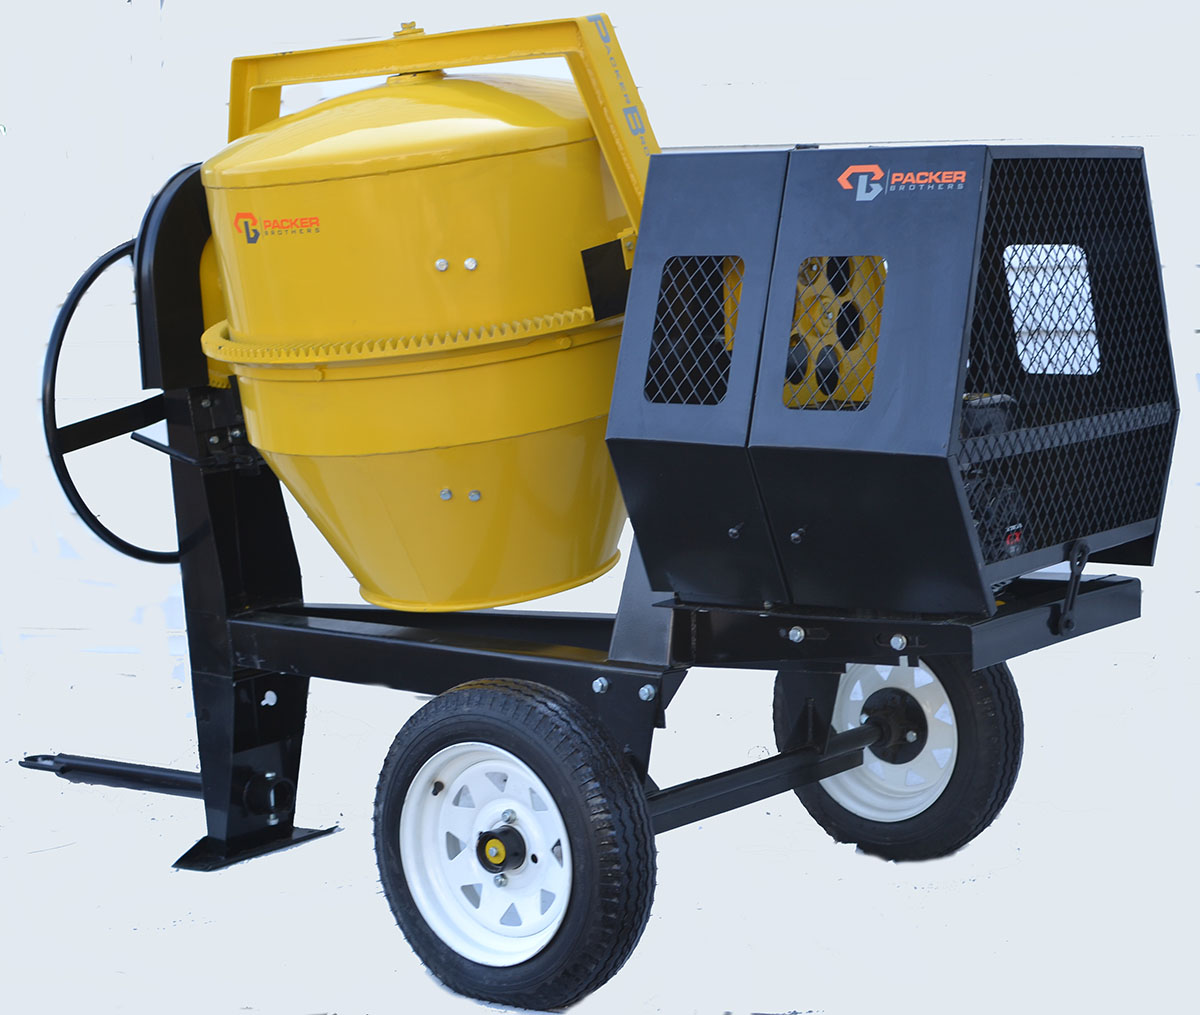 Cement Mixer Blades : Concrete mixer pb electric